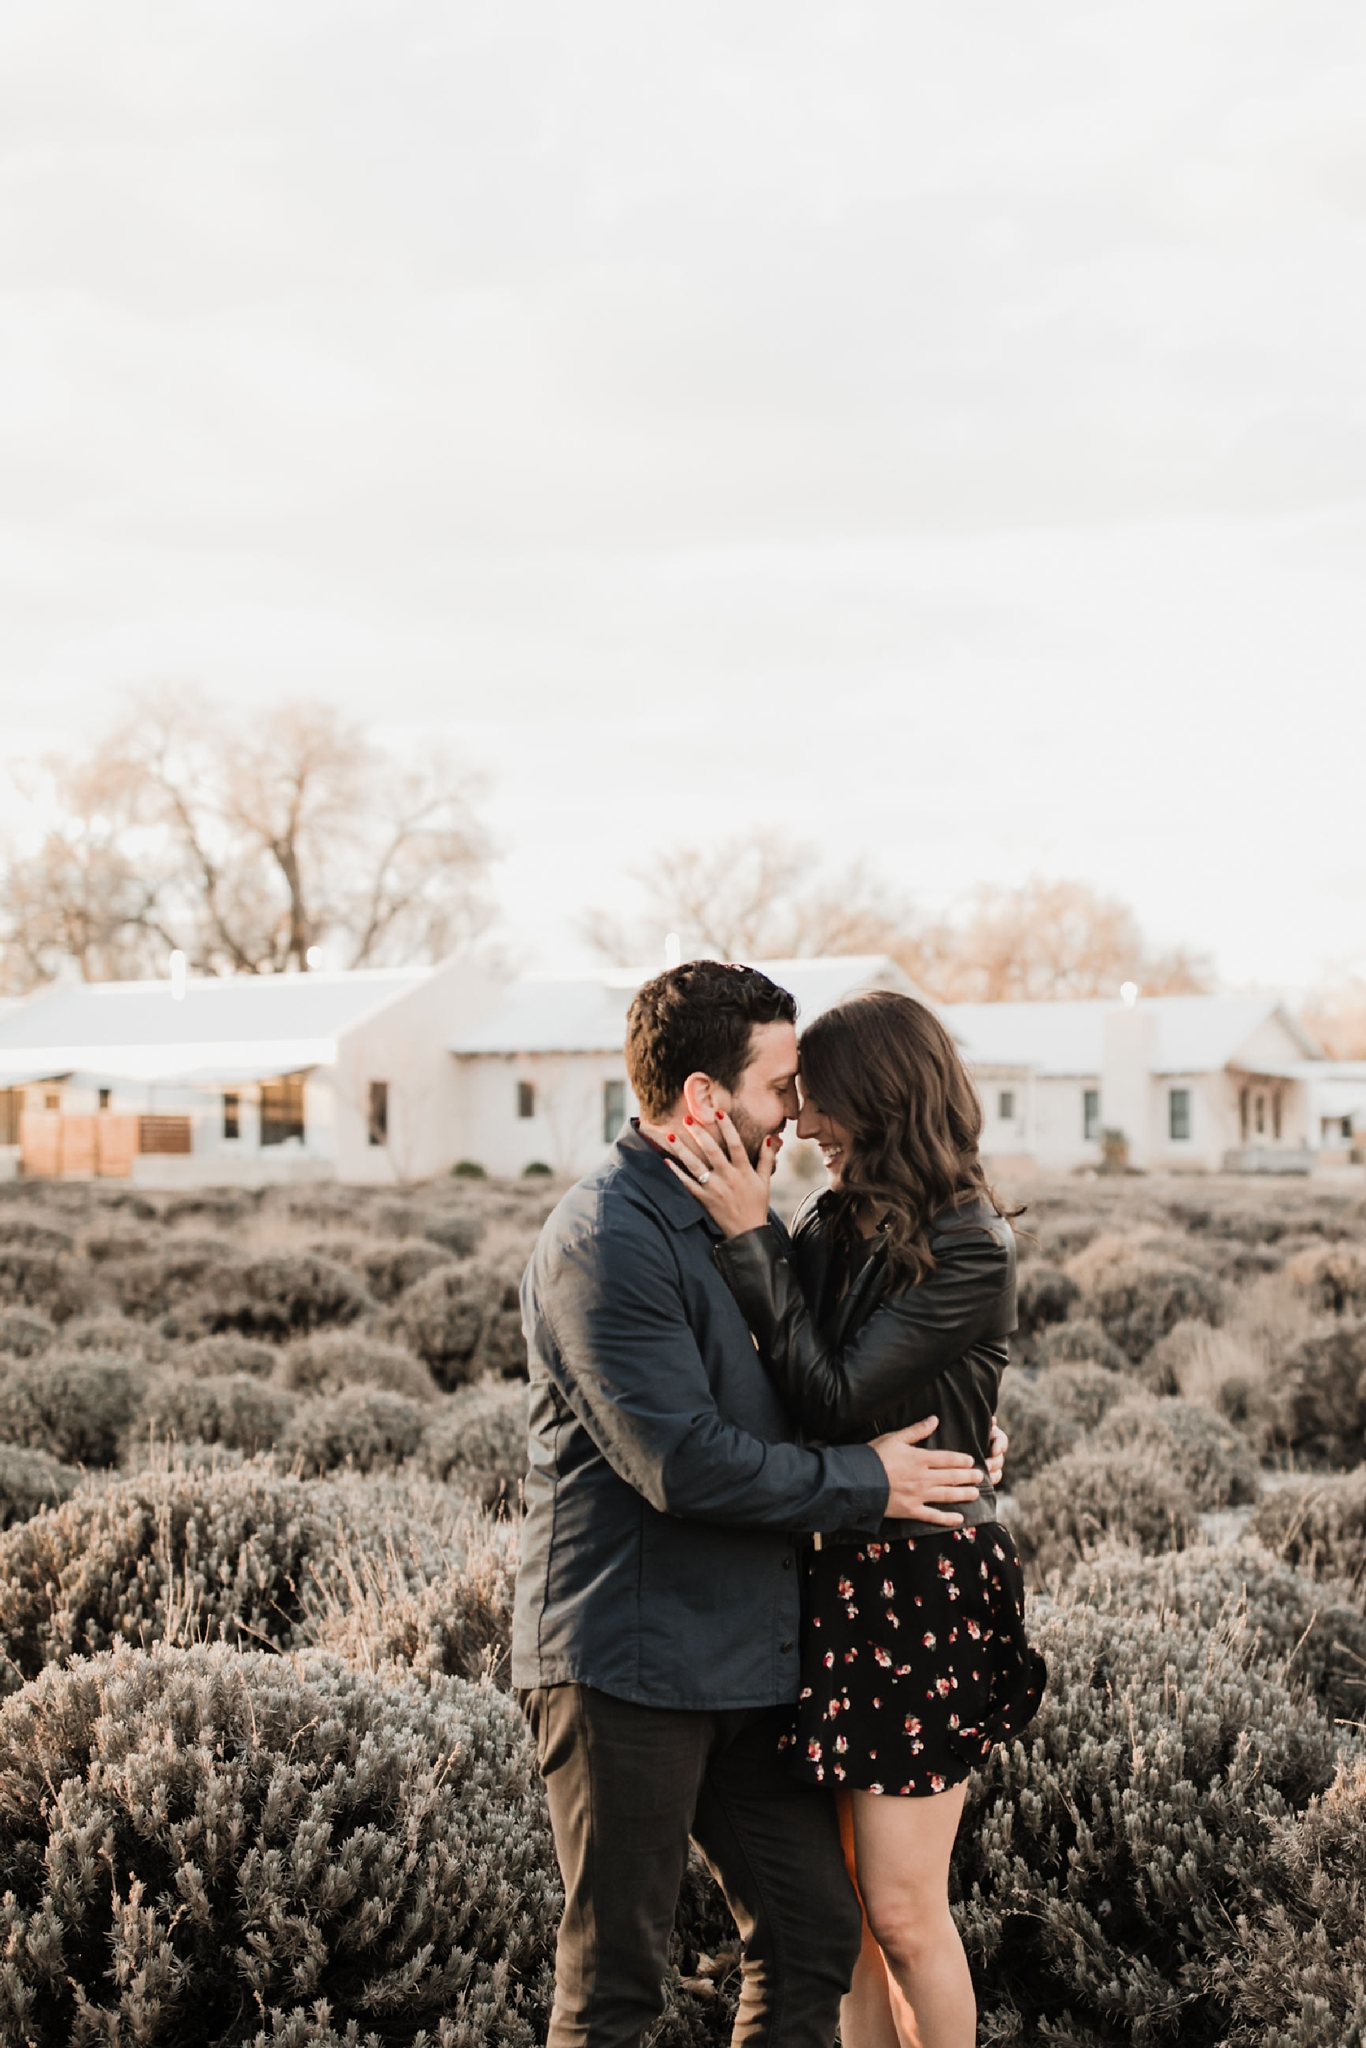 Alicia+lucia+photography+-+albuquerque+wedding+photographer+-+santa+fe+wedding+photography+-+new+mexico+wedding+photographer+-+new+mexico+wedding+-+new+mexico+engagement+-+los+poblanos+engagement+-+los+poblanos+wedding+-+fall+wedding_0034.jpg